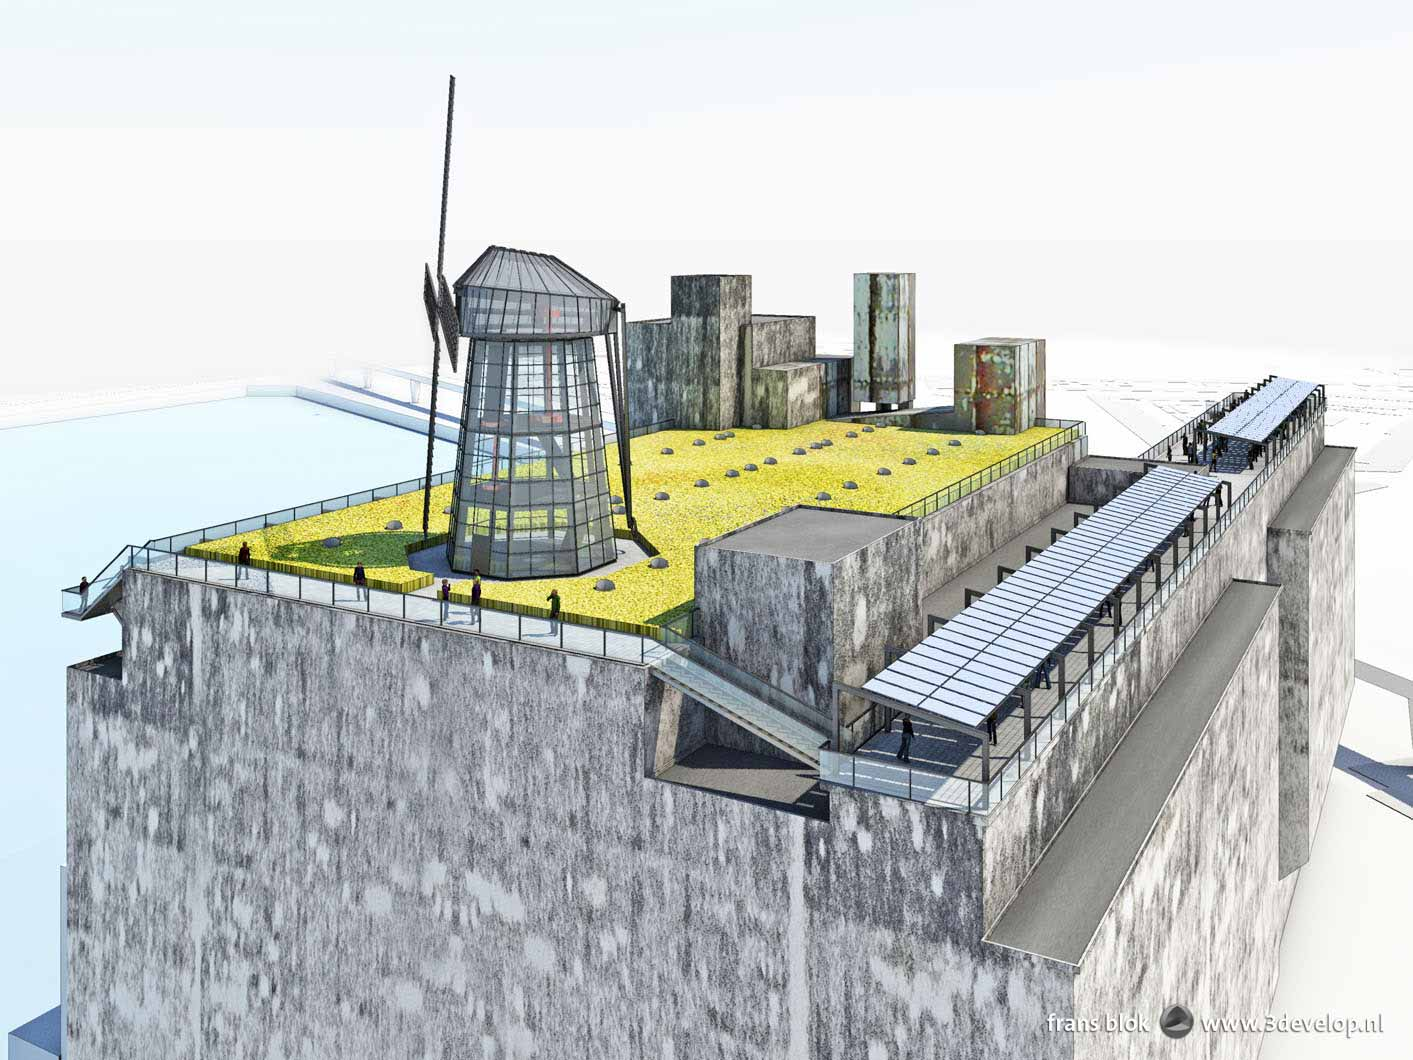 Artist impression of a competition entry for the roof of Maassilo, with a cornfield, a glass and steel windmill, a promenade and solar panels